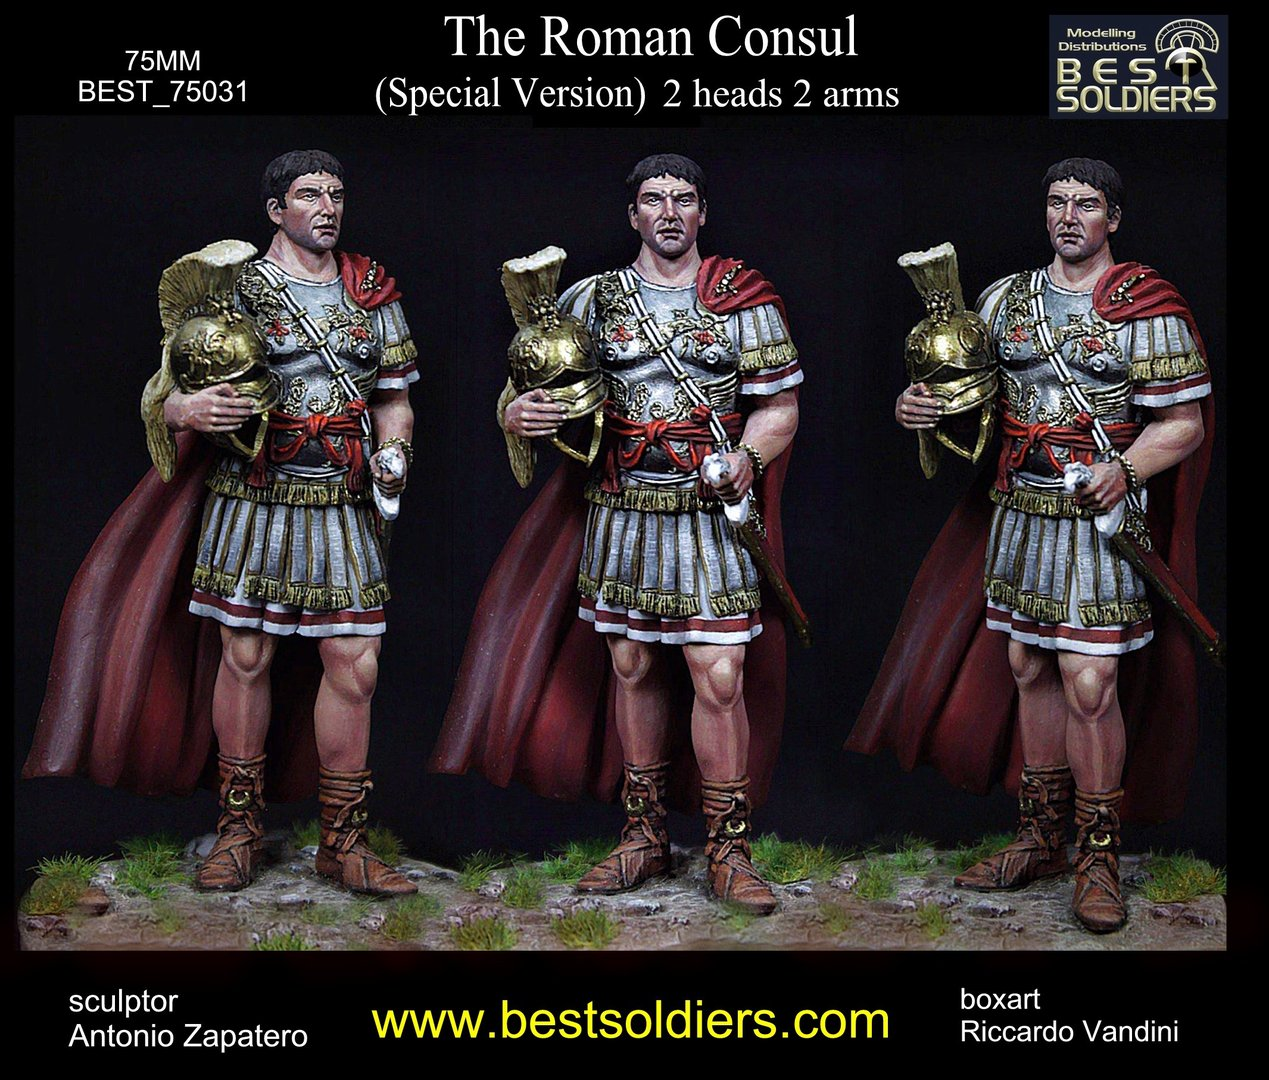 The Roman Consul - Special Version(enclose version 75028)